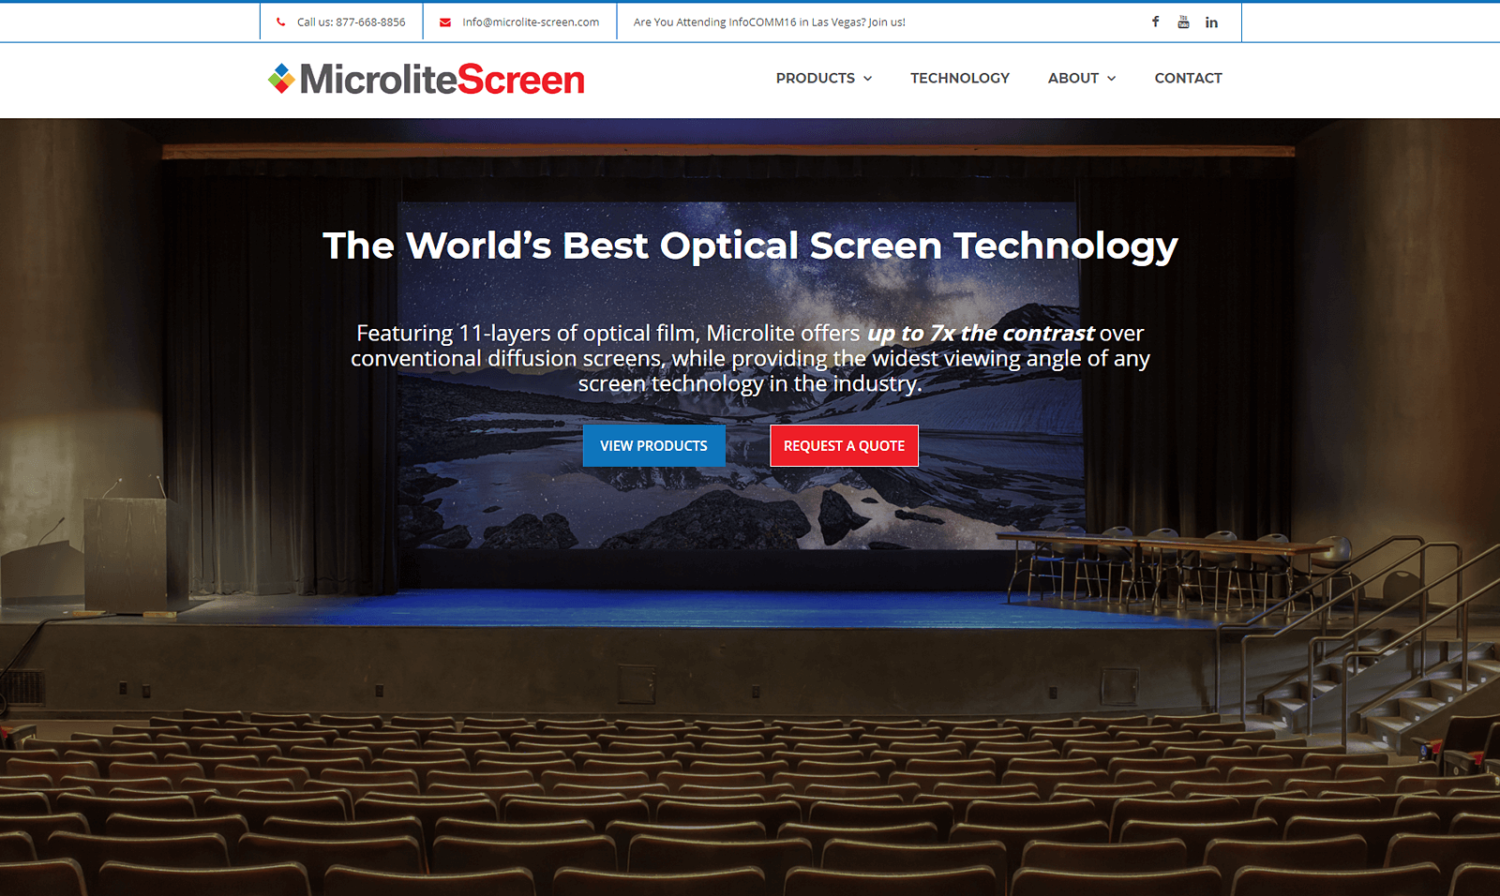 Microlite Screens Website